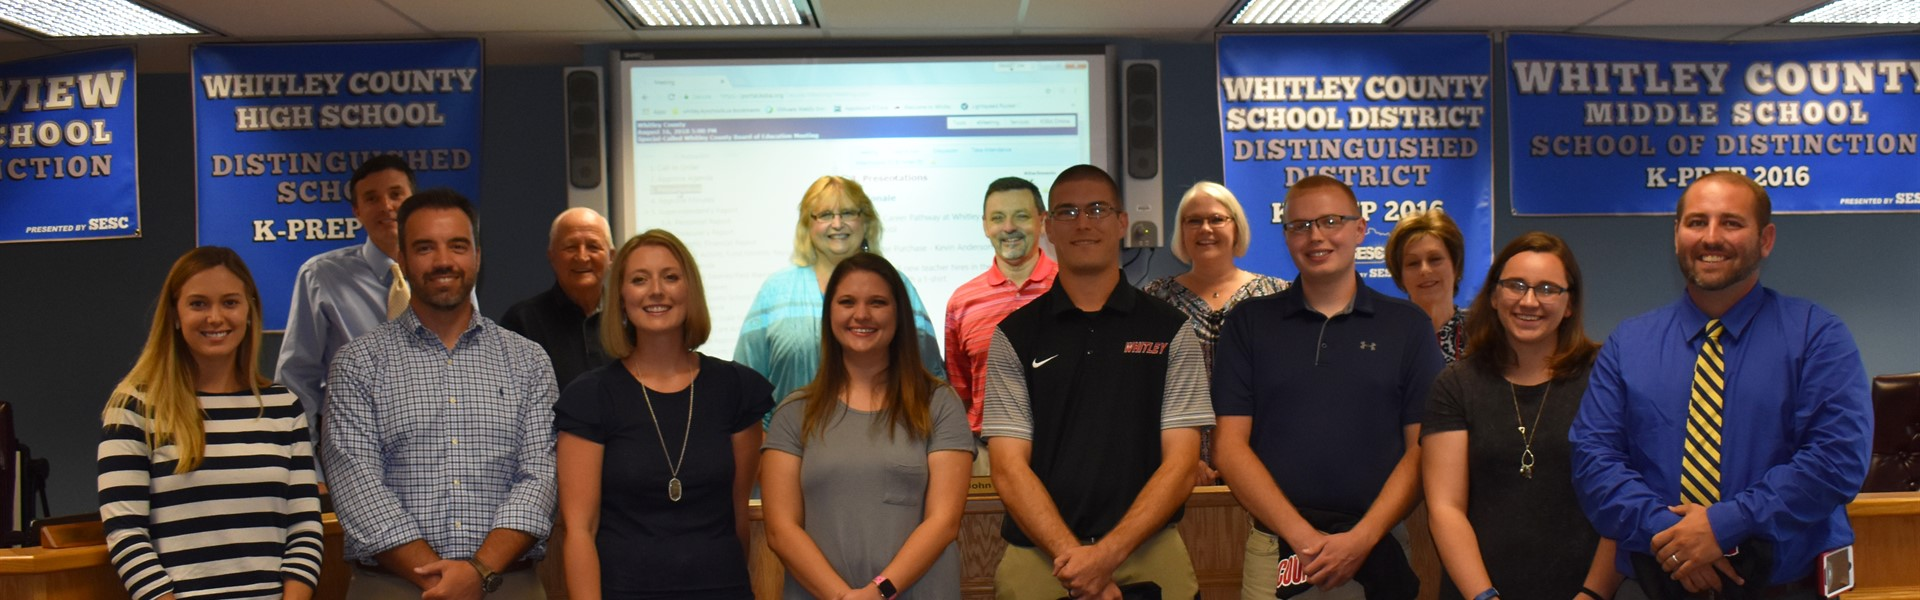 Whitley County School District welcomes new employees!